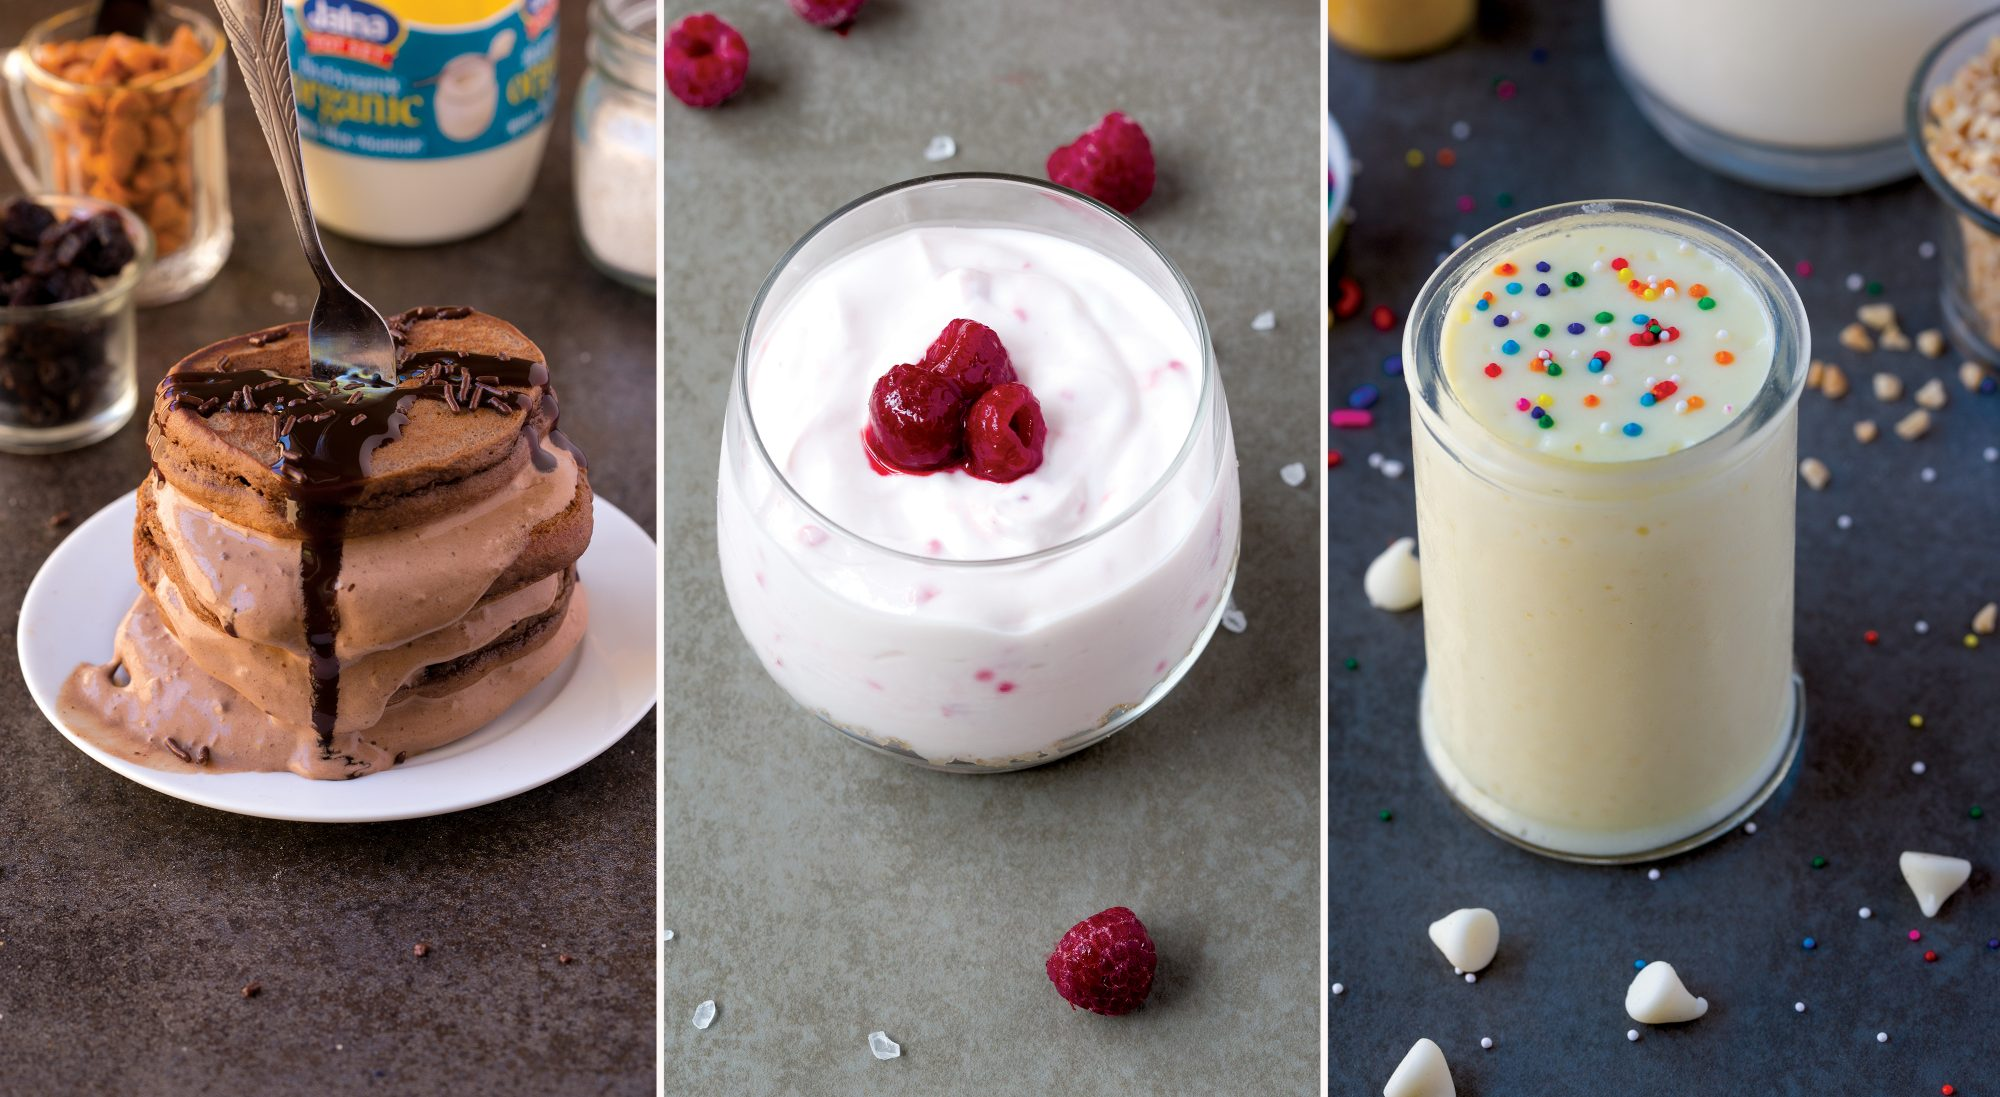 These 3 Simple Dessert Recipes Are All Rich in Protein